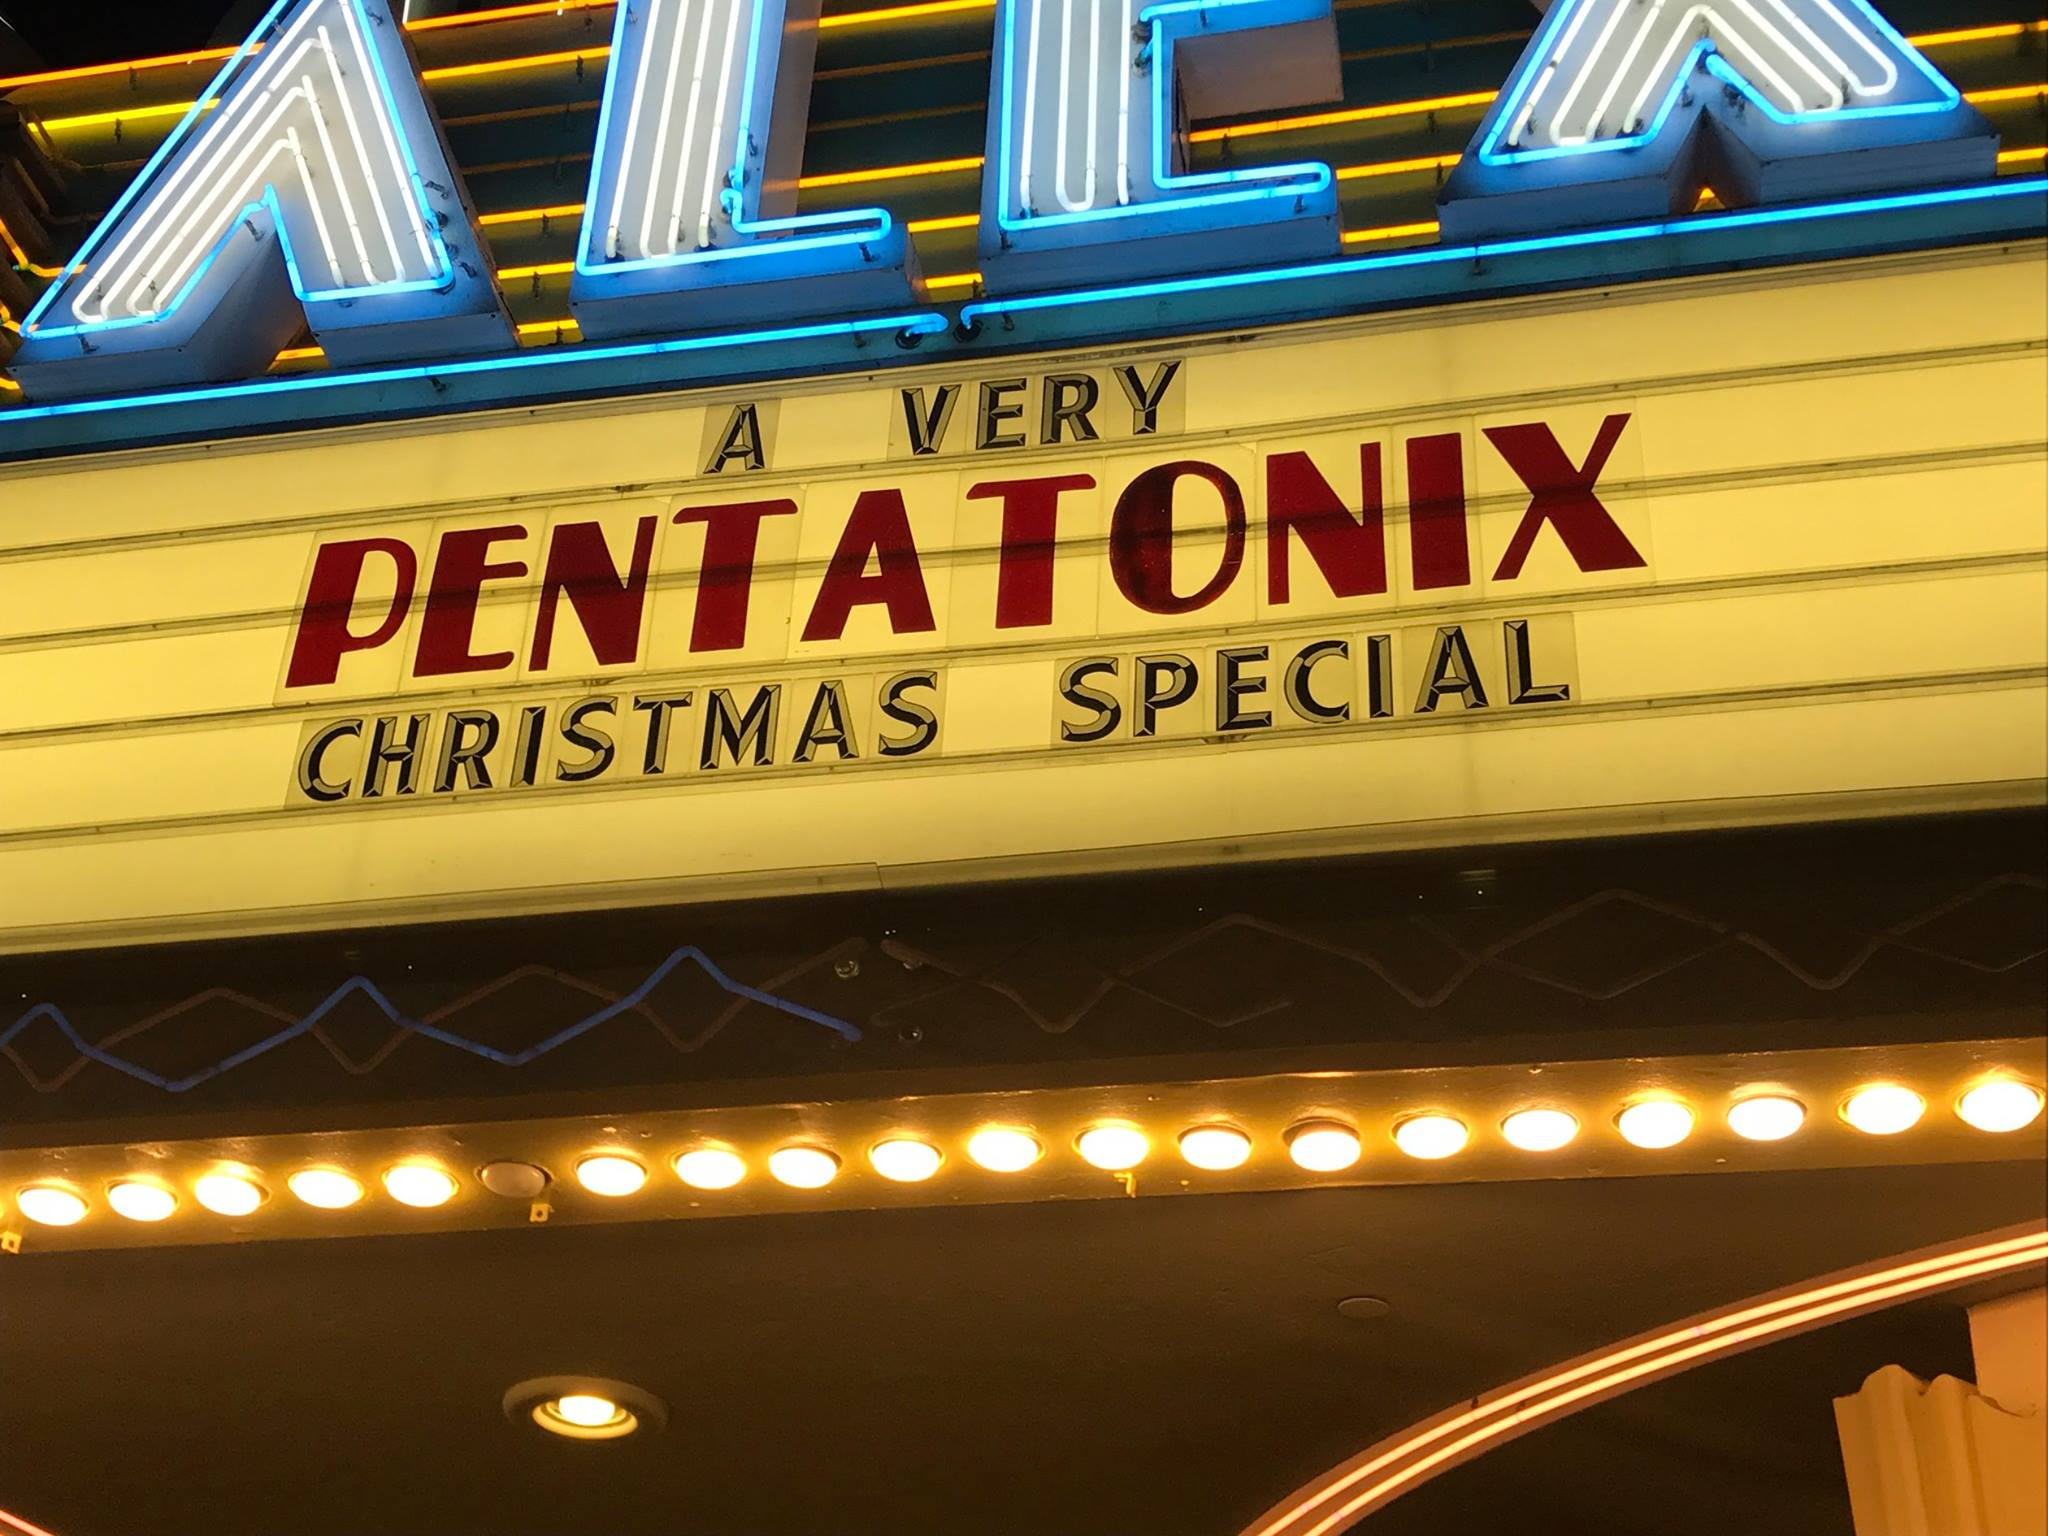 A Very Pentatonix Christmas 2019 A VERY PENTATONIX CHRISTMAS SPECIAL AIRS MONDAY NOVEMBER 27TH ON NBC!